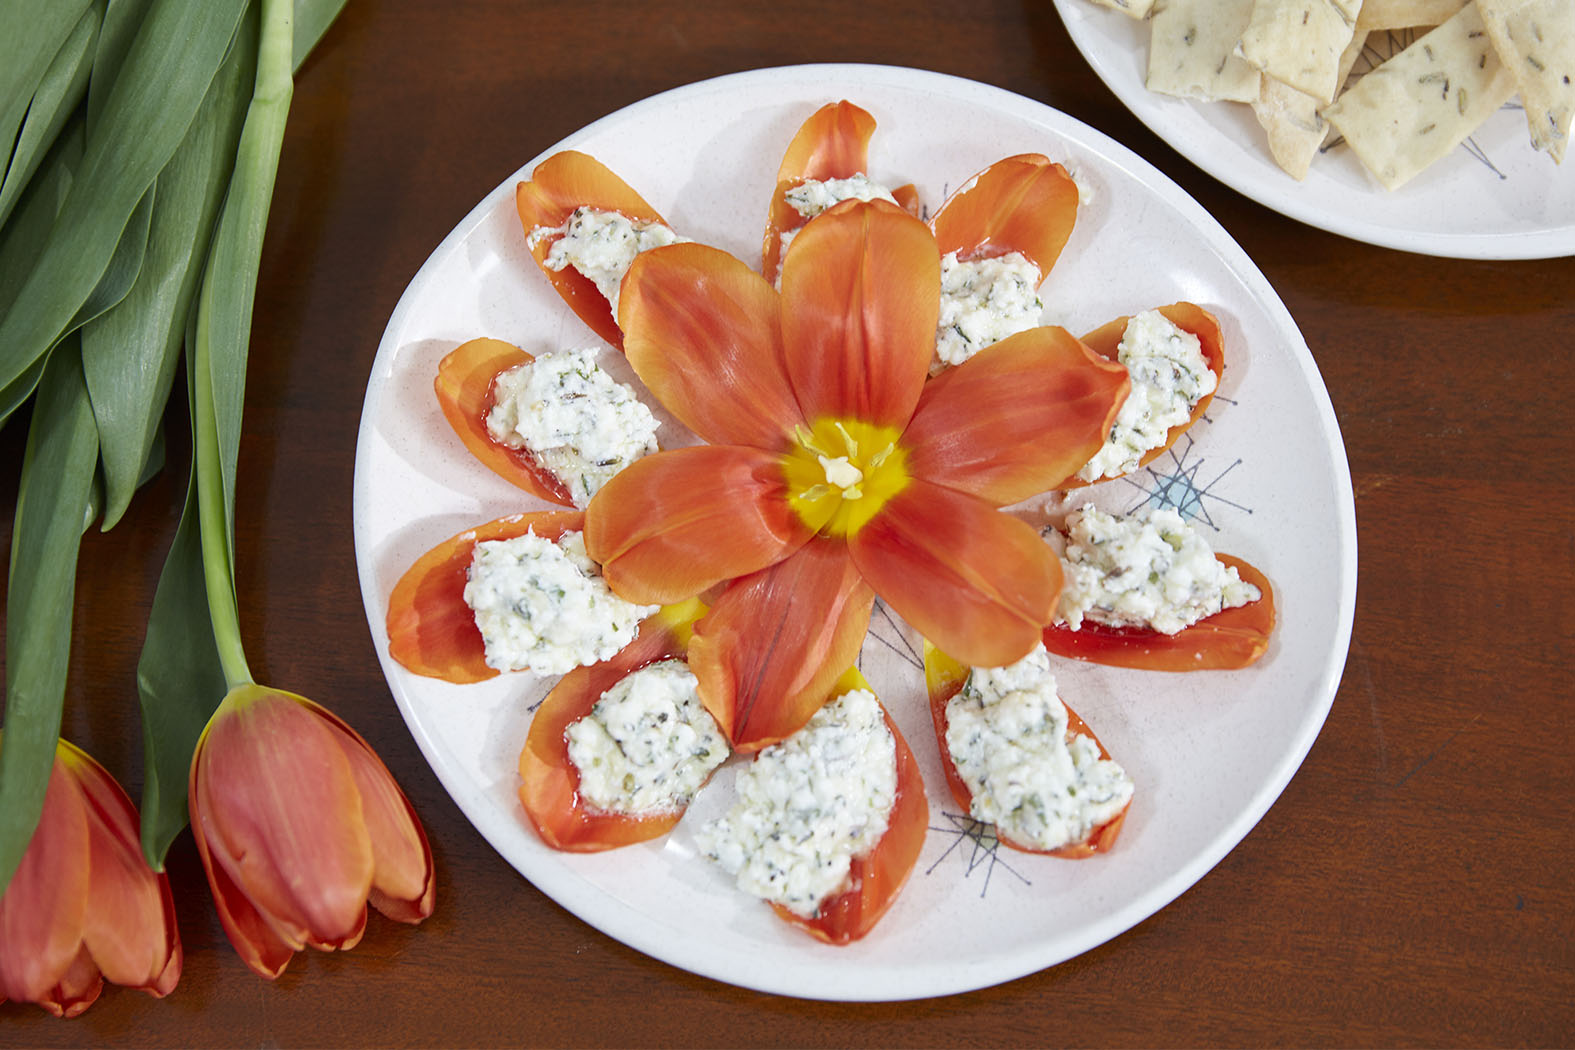 """Flower Inspired Recipes or Flower Cocktails are included each week- on """"J Schwanke's Life in Bloom"""", featured here is Herb Infused Goat Cheese served on Organic Tulip Petals."""